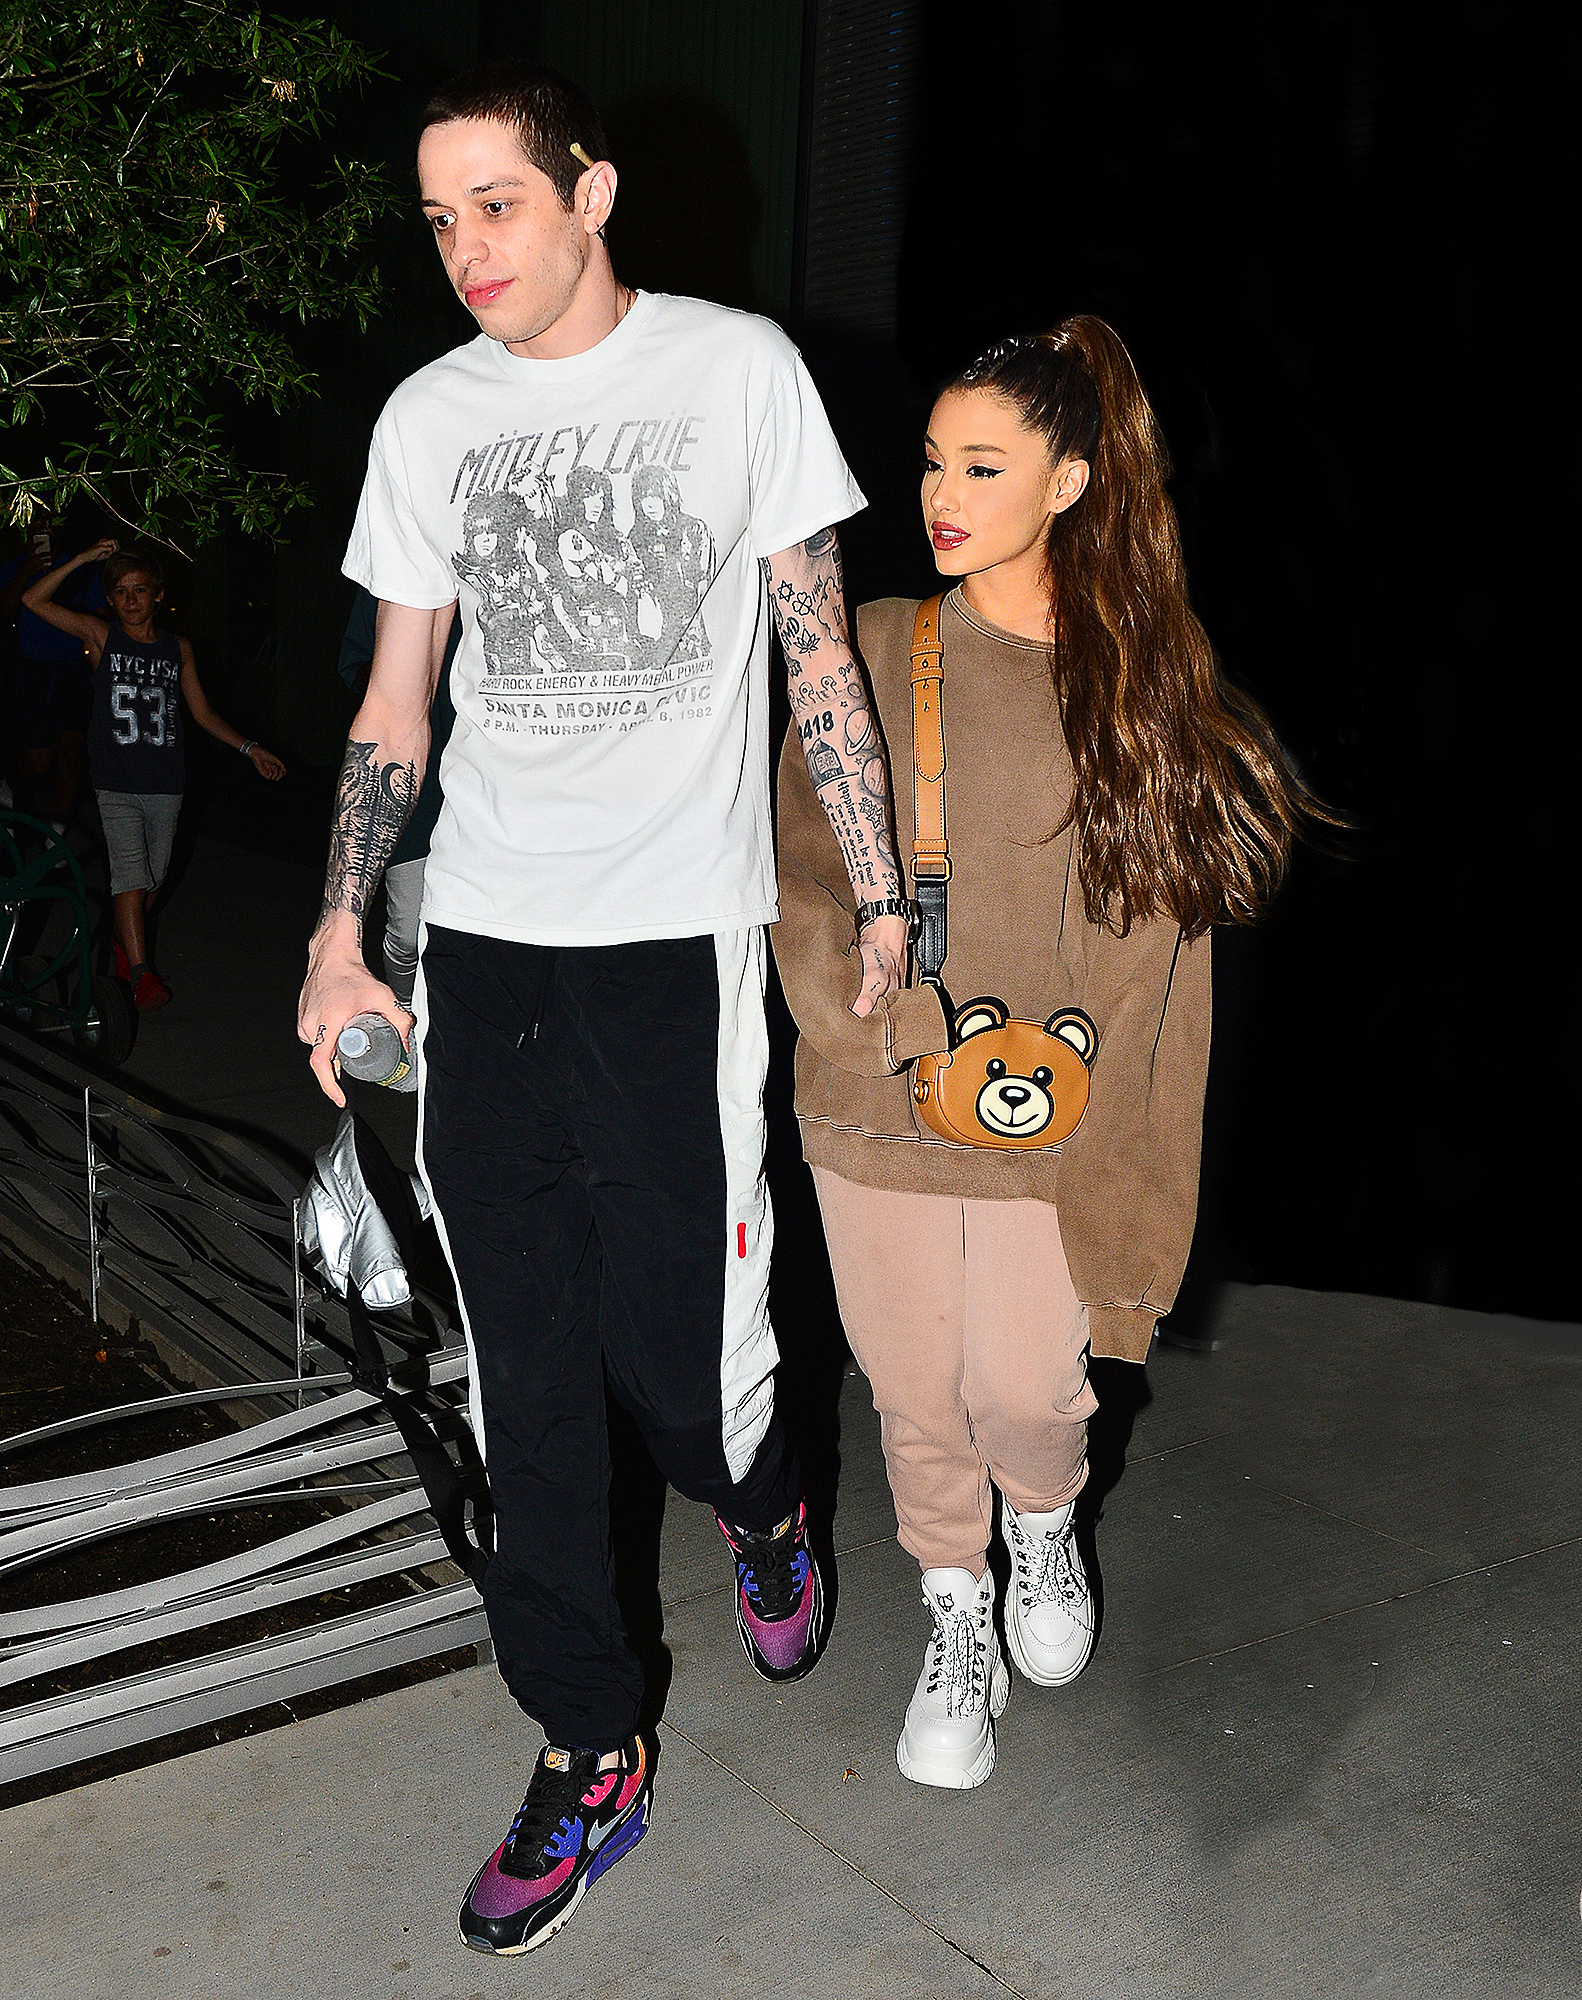 EXCLUSIVE: Ariana Grande And Pete Davidson Head Out For A Late Night Romantic Drive In His Mercedes Benz In New York City